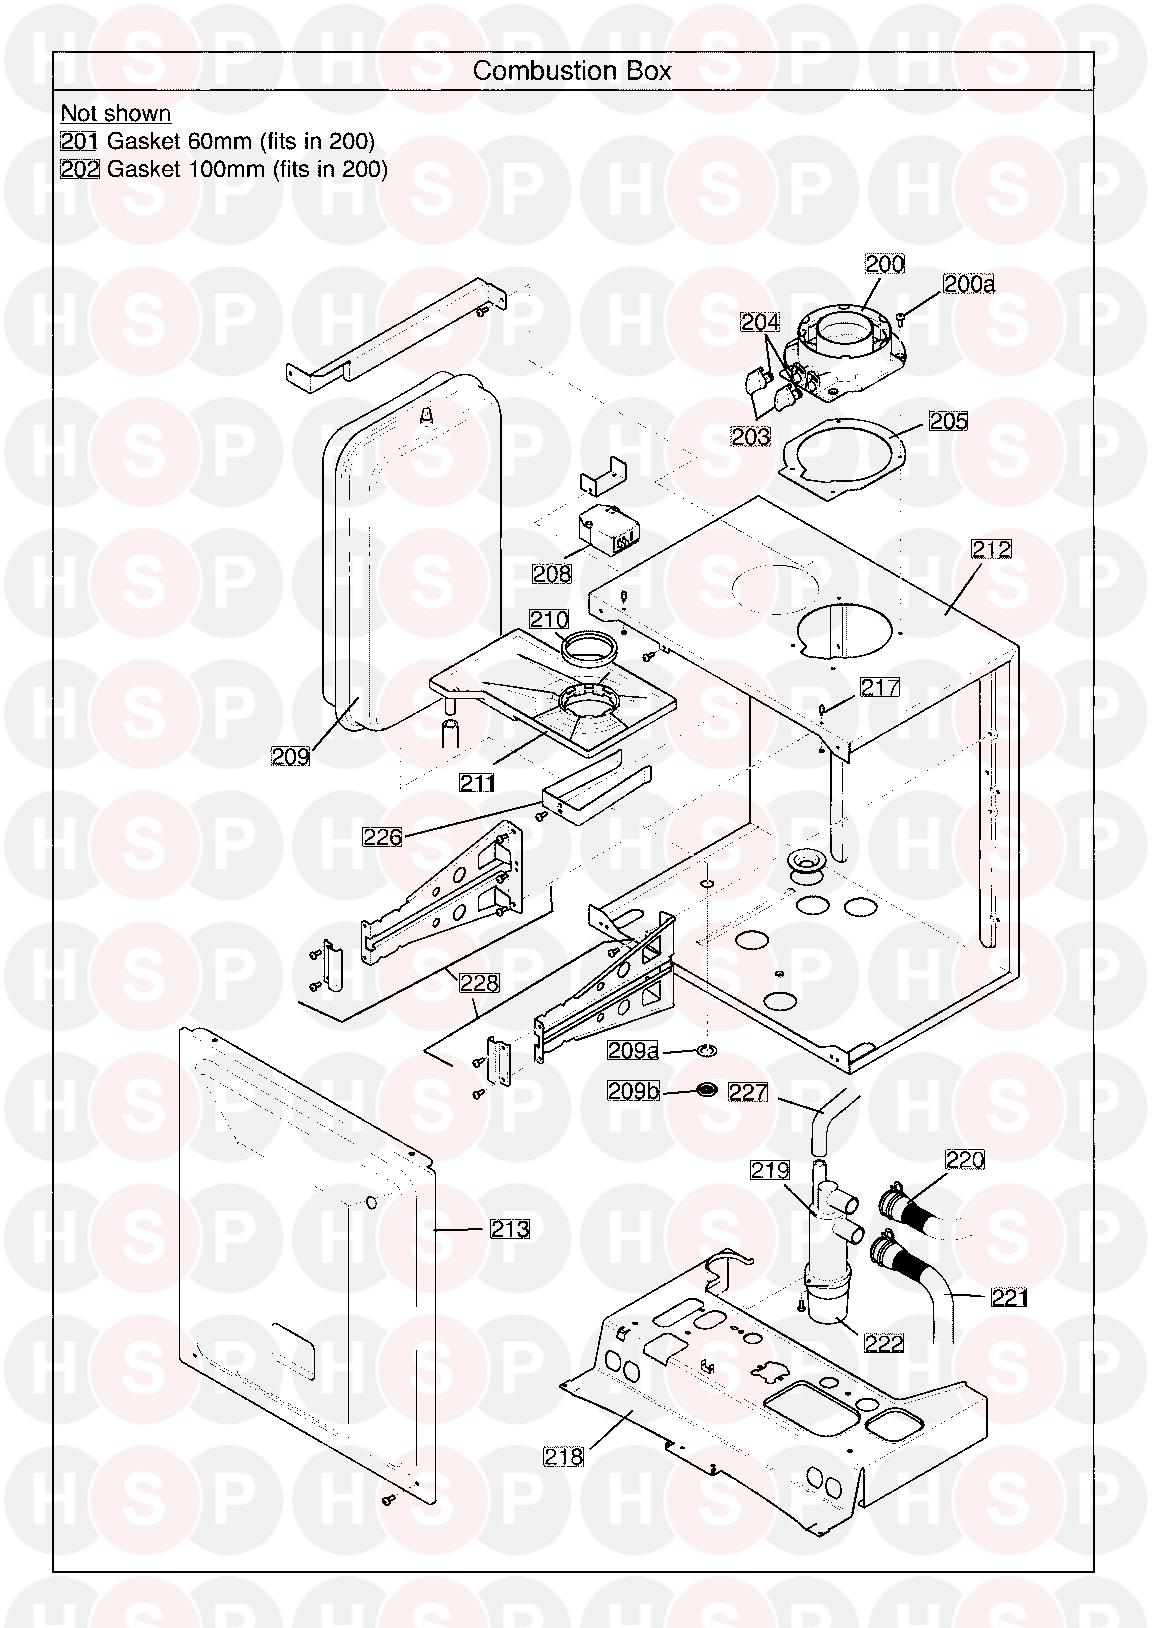 baxi 28 system erp serial no  ending in ac  combustion box  diagram